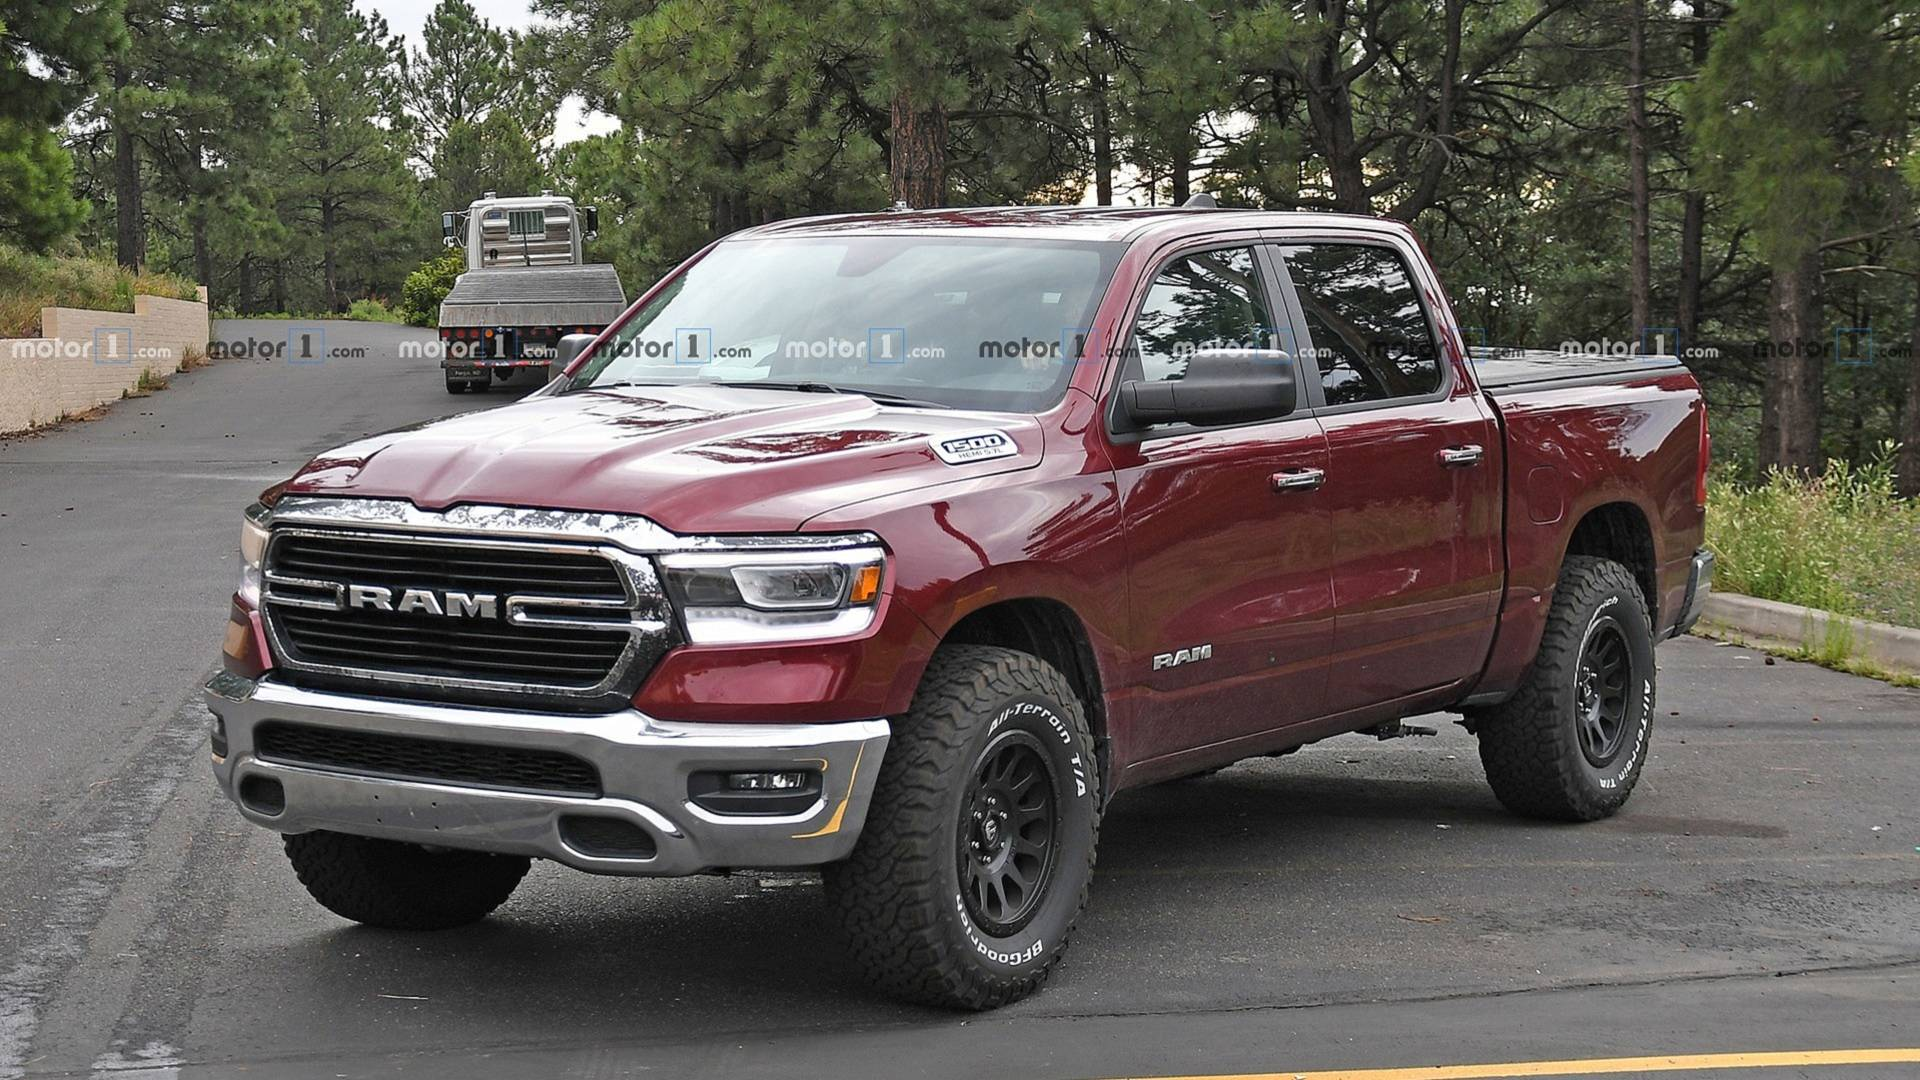 2020 Ram 1500 Review.Complete Car Info For 22 The Best 2020 Ram 1500 Review With